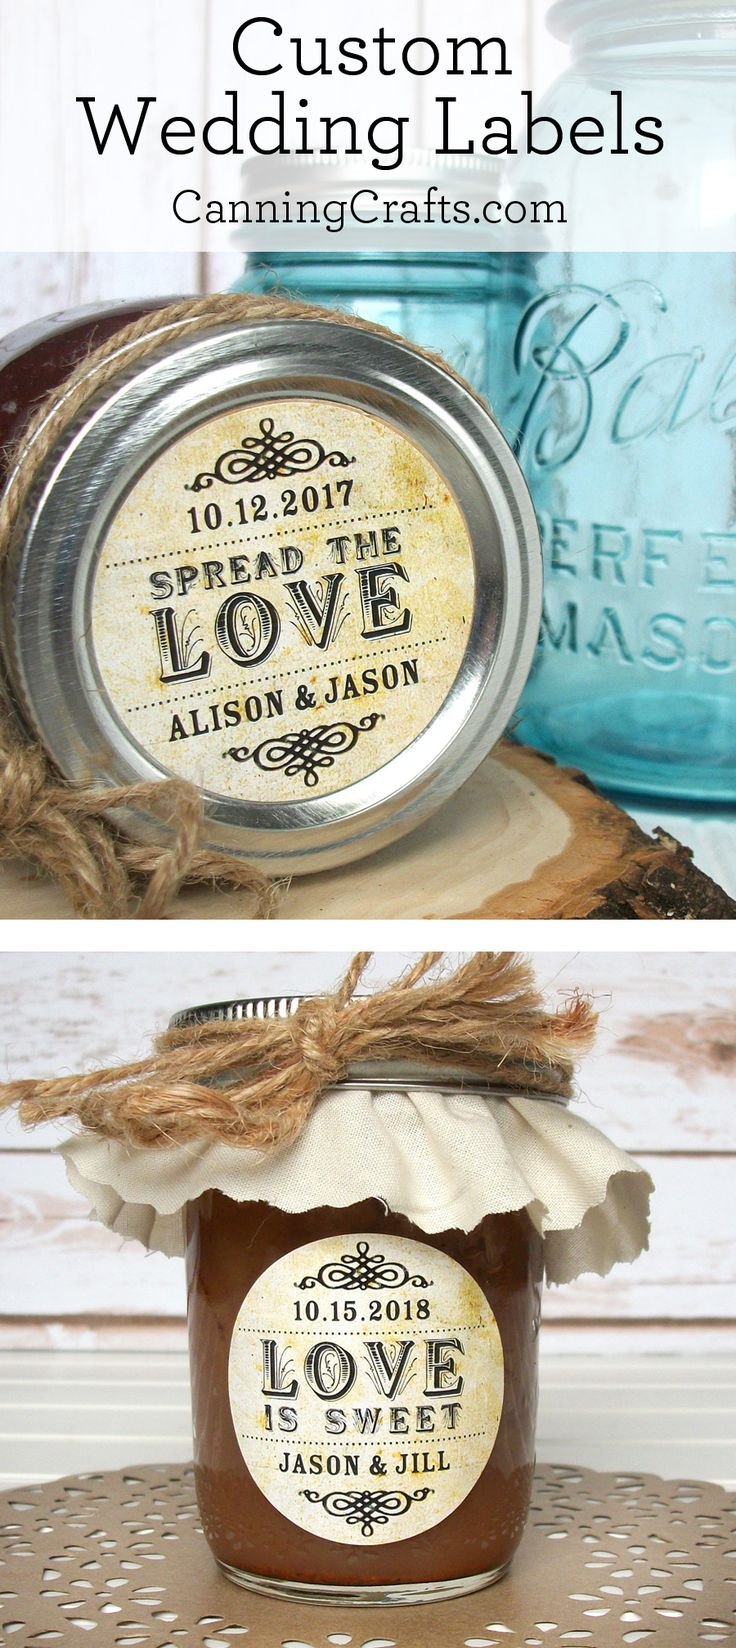 Custom vintage wedding favor labels, personalized Spread the Love jam jar labels, Love is Sweet, Meant to Bee stickers | CanningCrafts.com #bridalshowerfavors  #weddingfavors #weddinginspiration